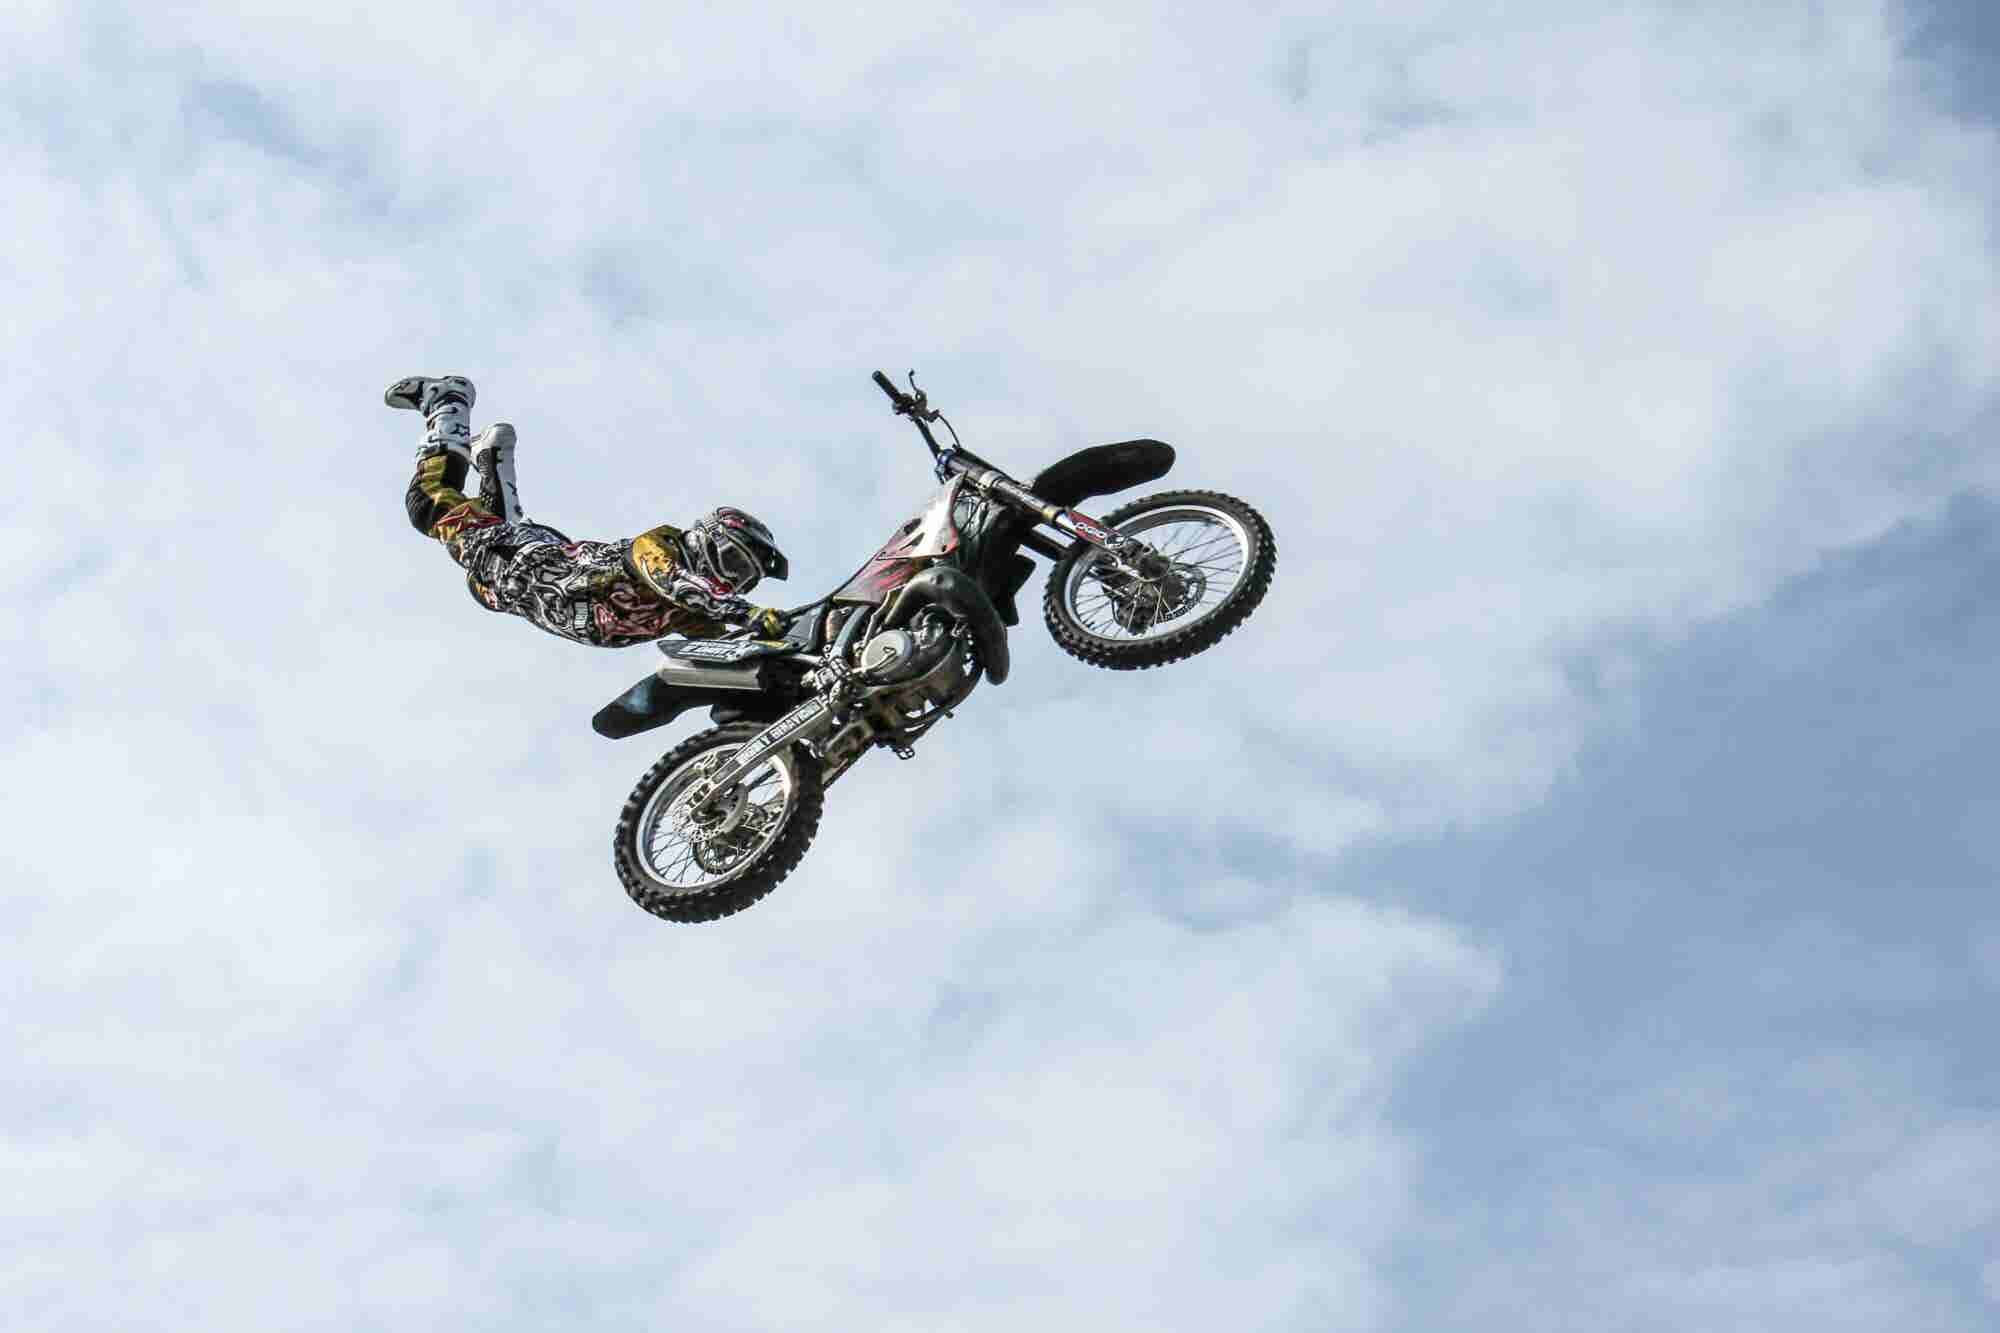 My Lessons in Entrepreneurship From Adventure Sports